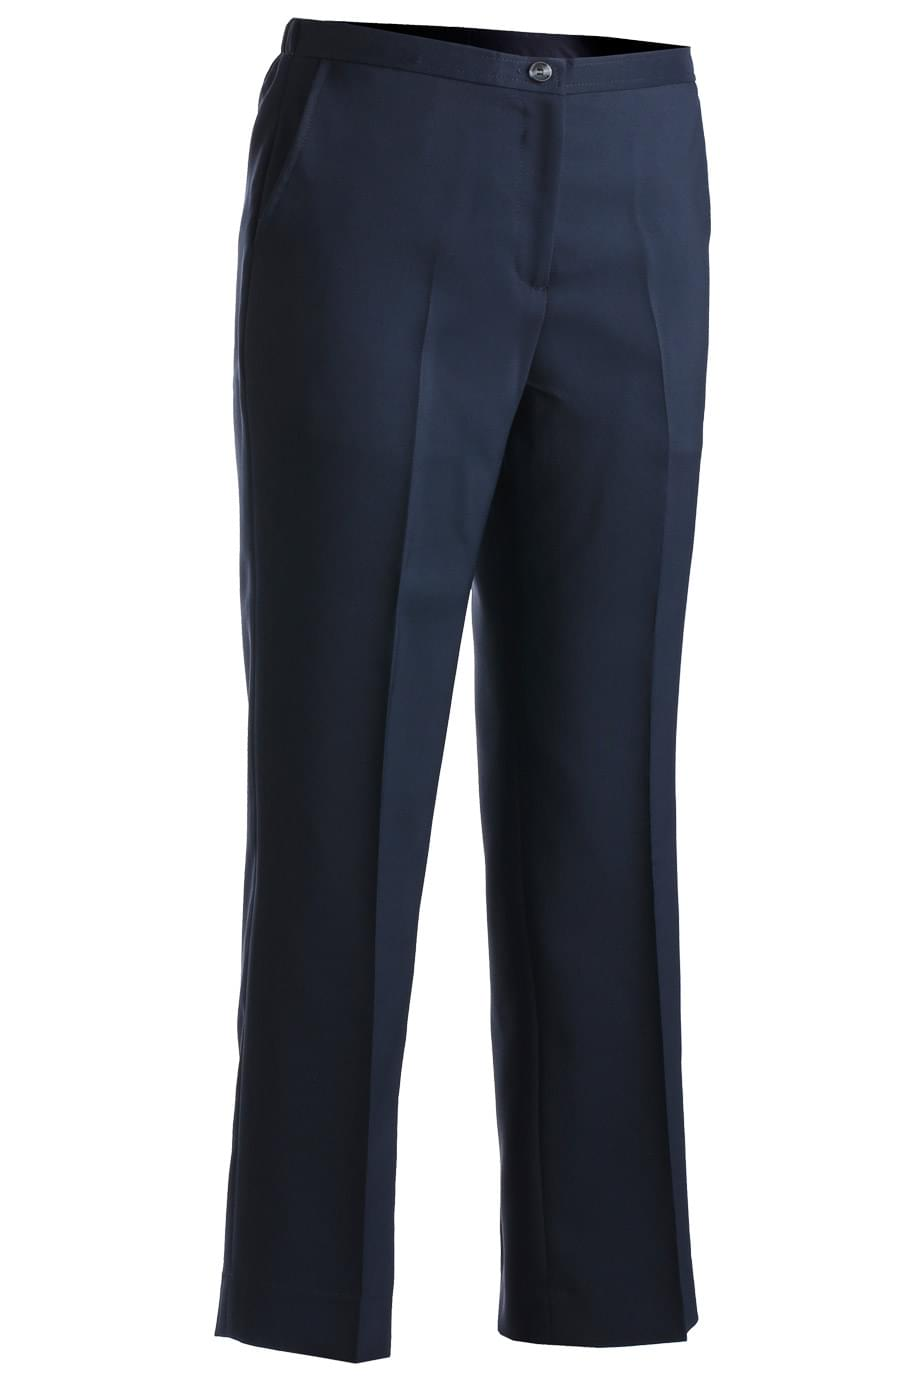 LADIES' POLYESTER FLAT FRONT PANT